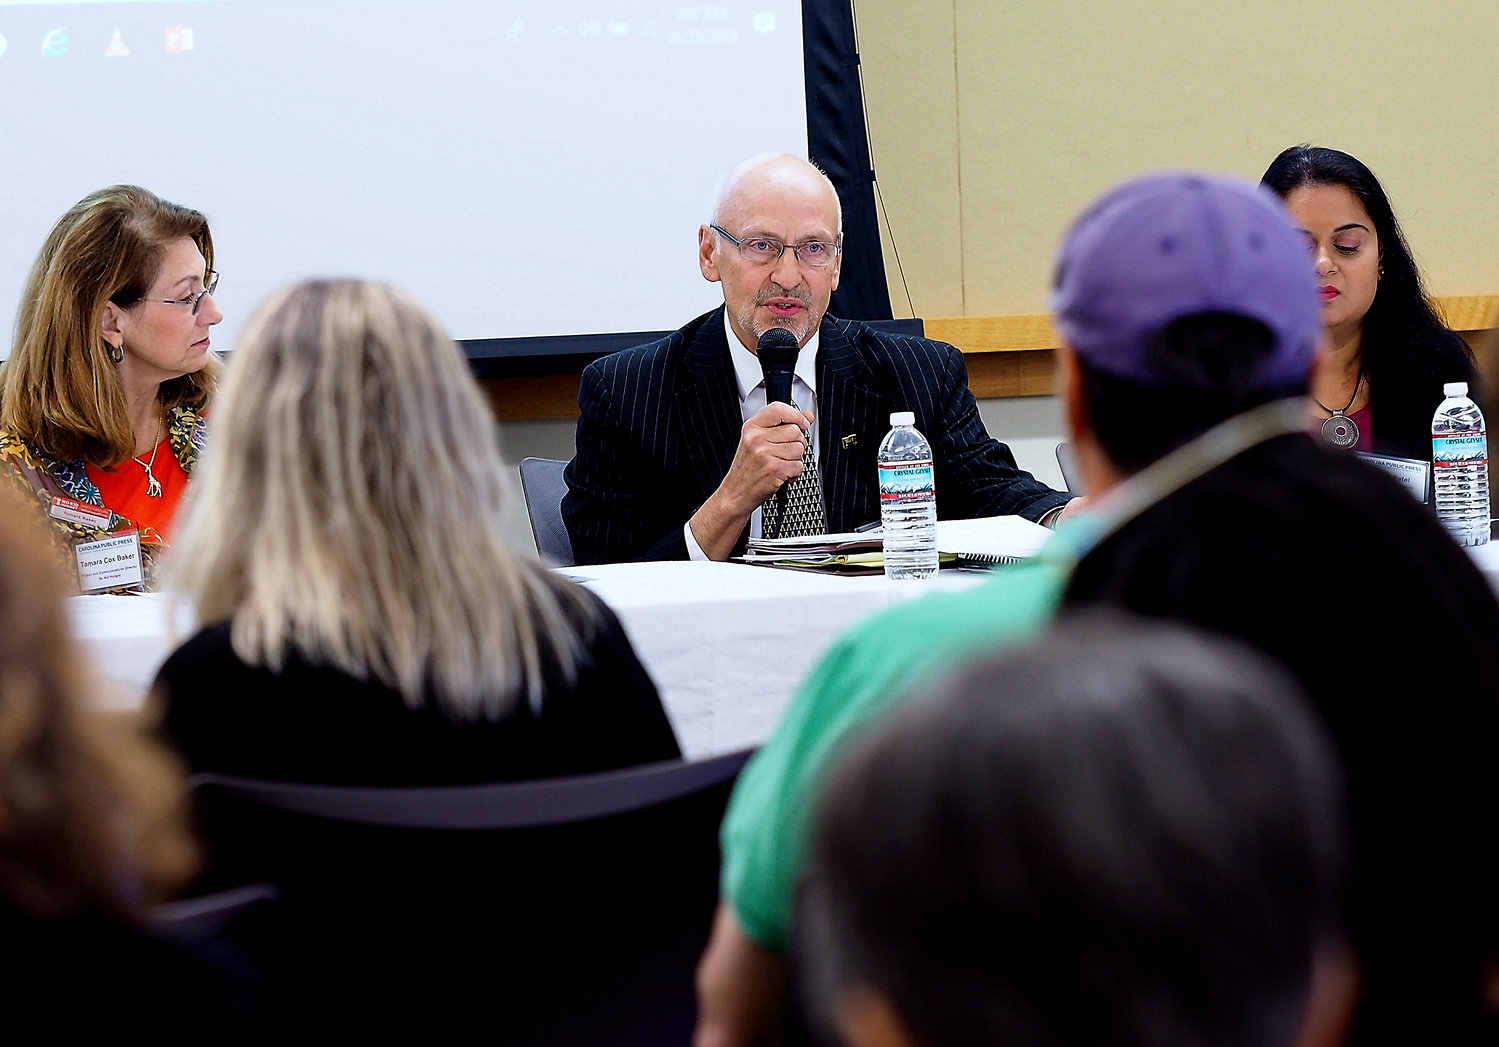 Dennis Streets, the executive director of Chatham County's Council on Aging, spoke Friday about the issues of loneliness and lack of income that many seniors face. Street was a panelist at the Faces of Hunger forum at the Chatham Community Library.